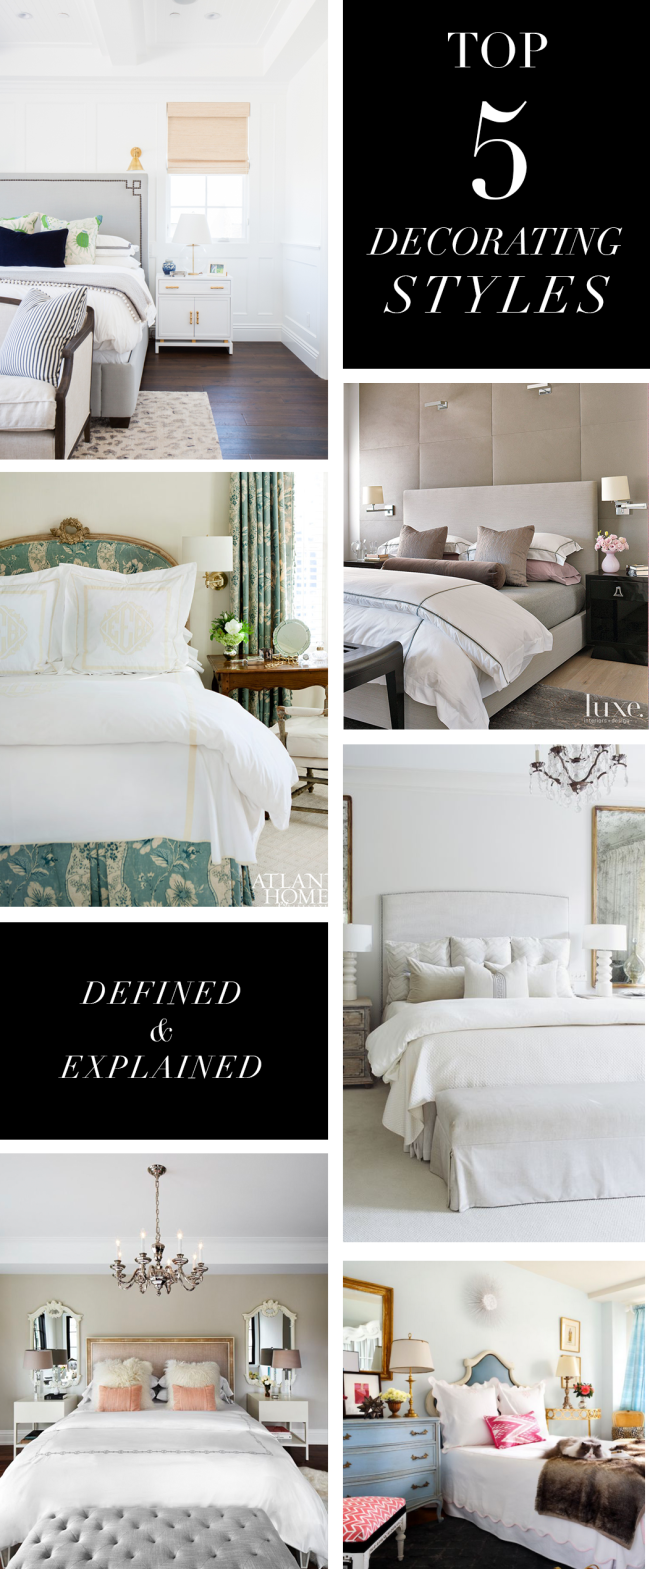 Exceptionnel Top 5 Decorating Styles And Bedroom Themes